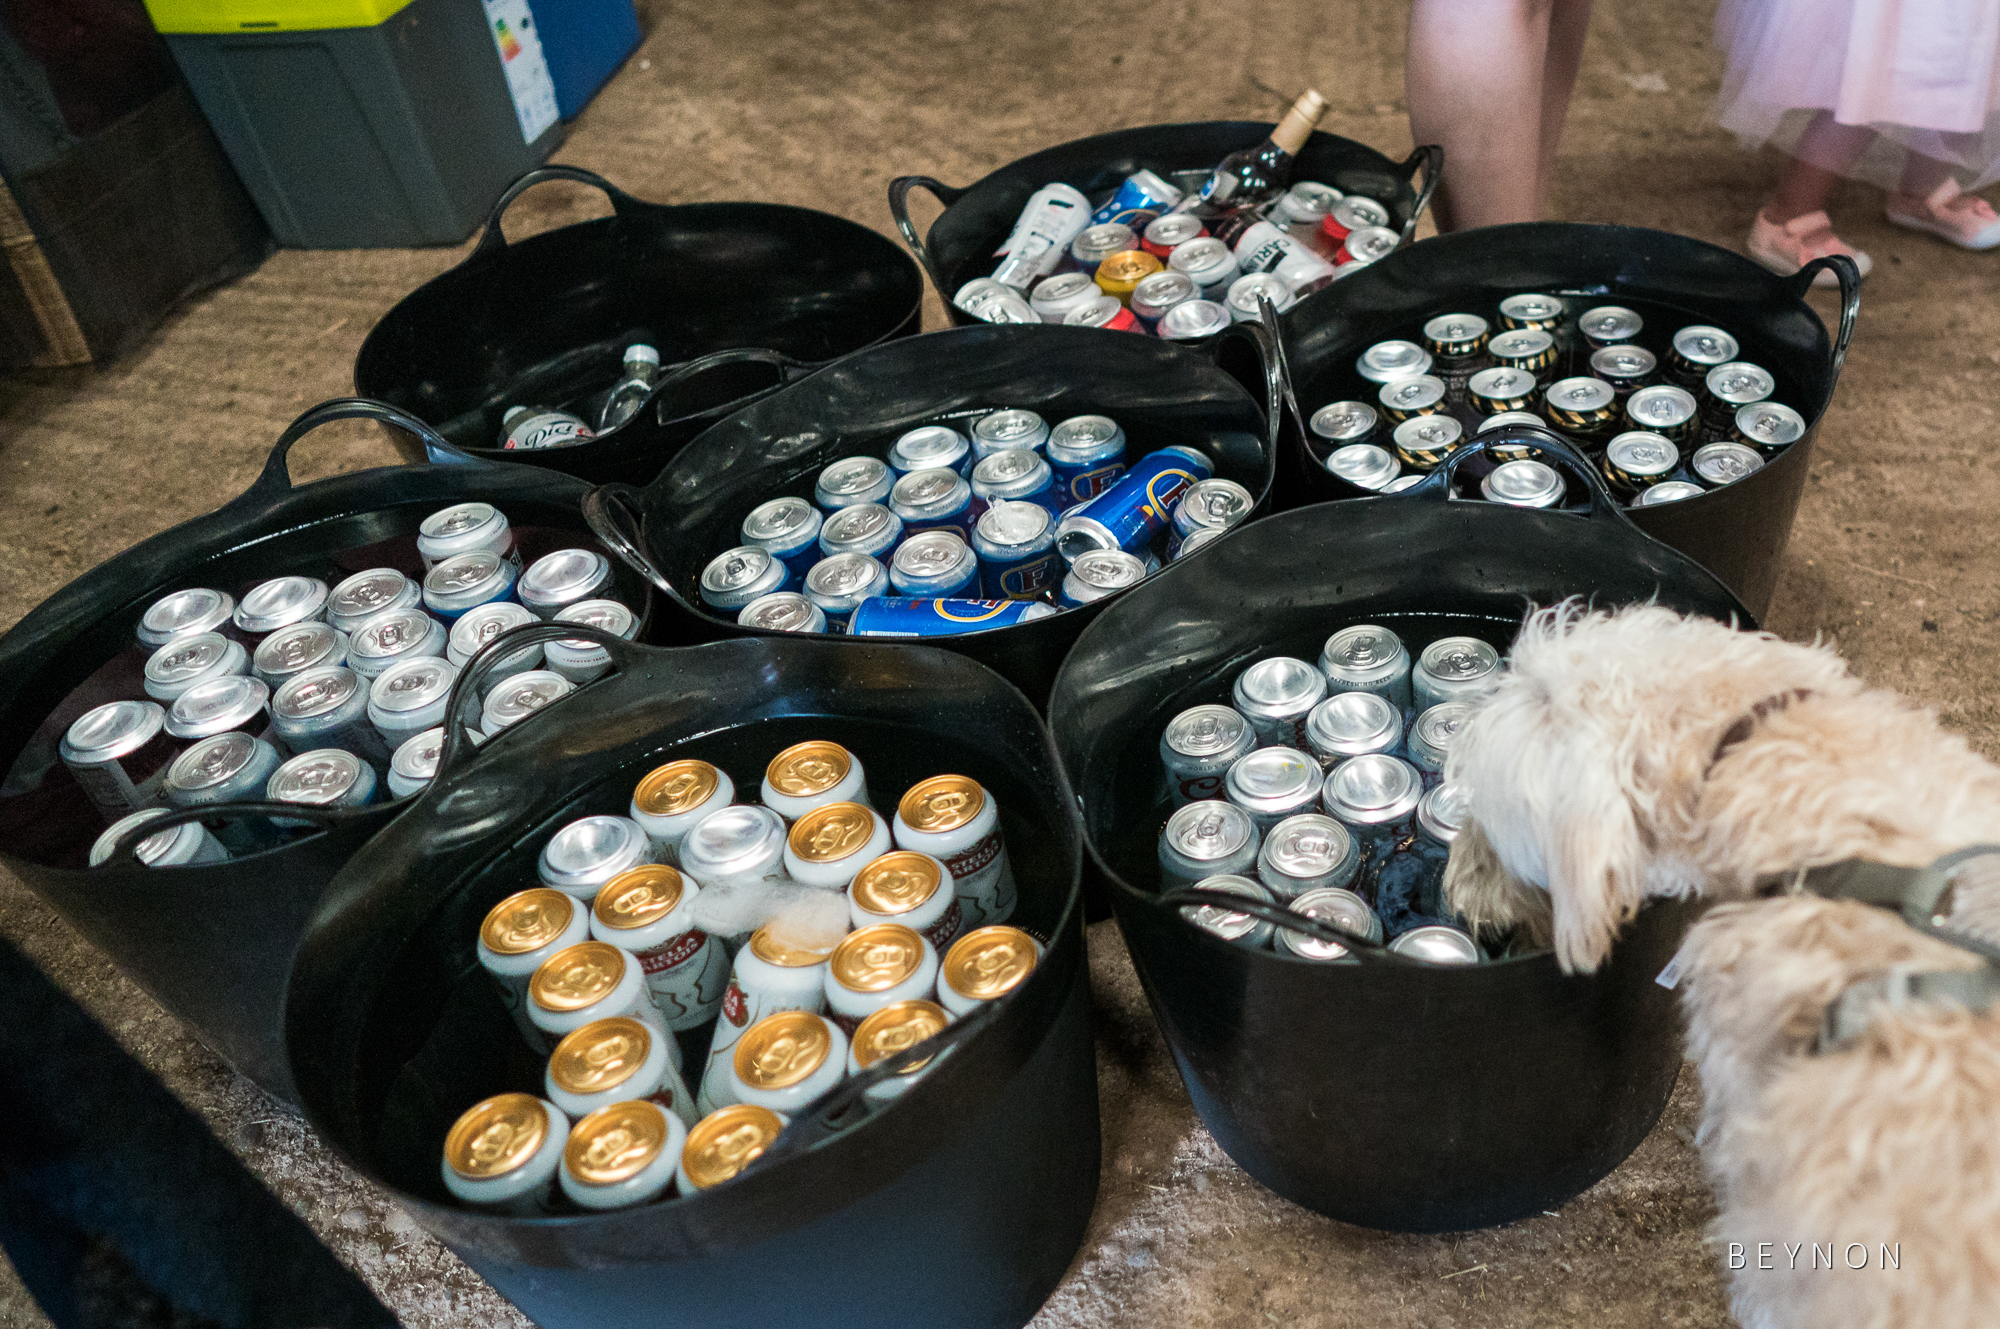 Dog checks out the beer